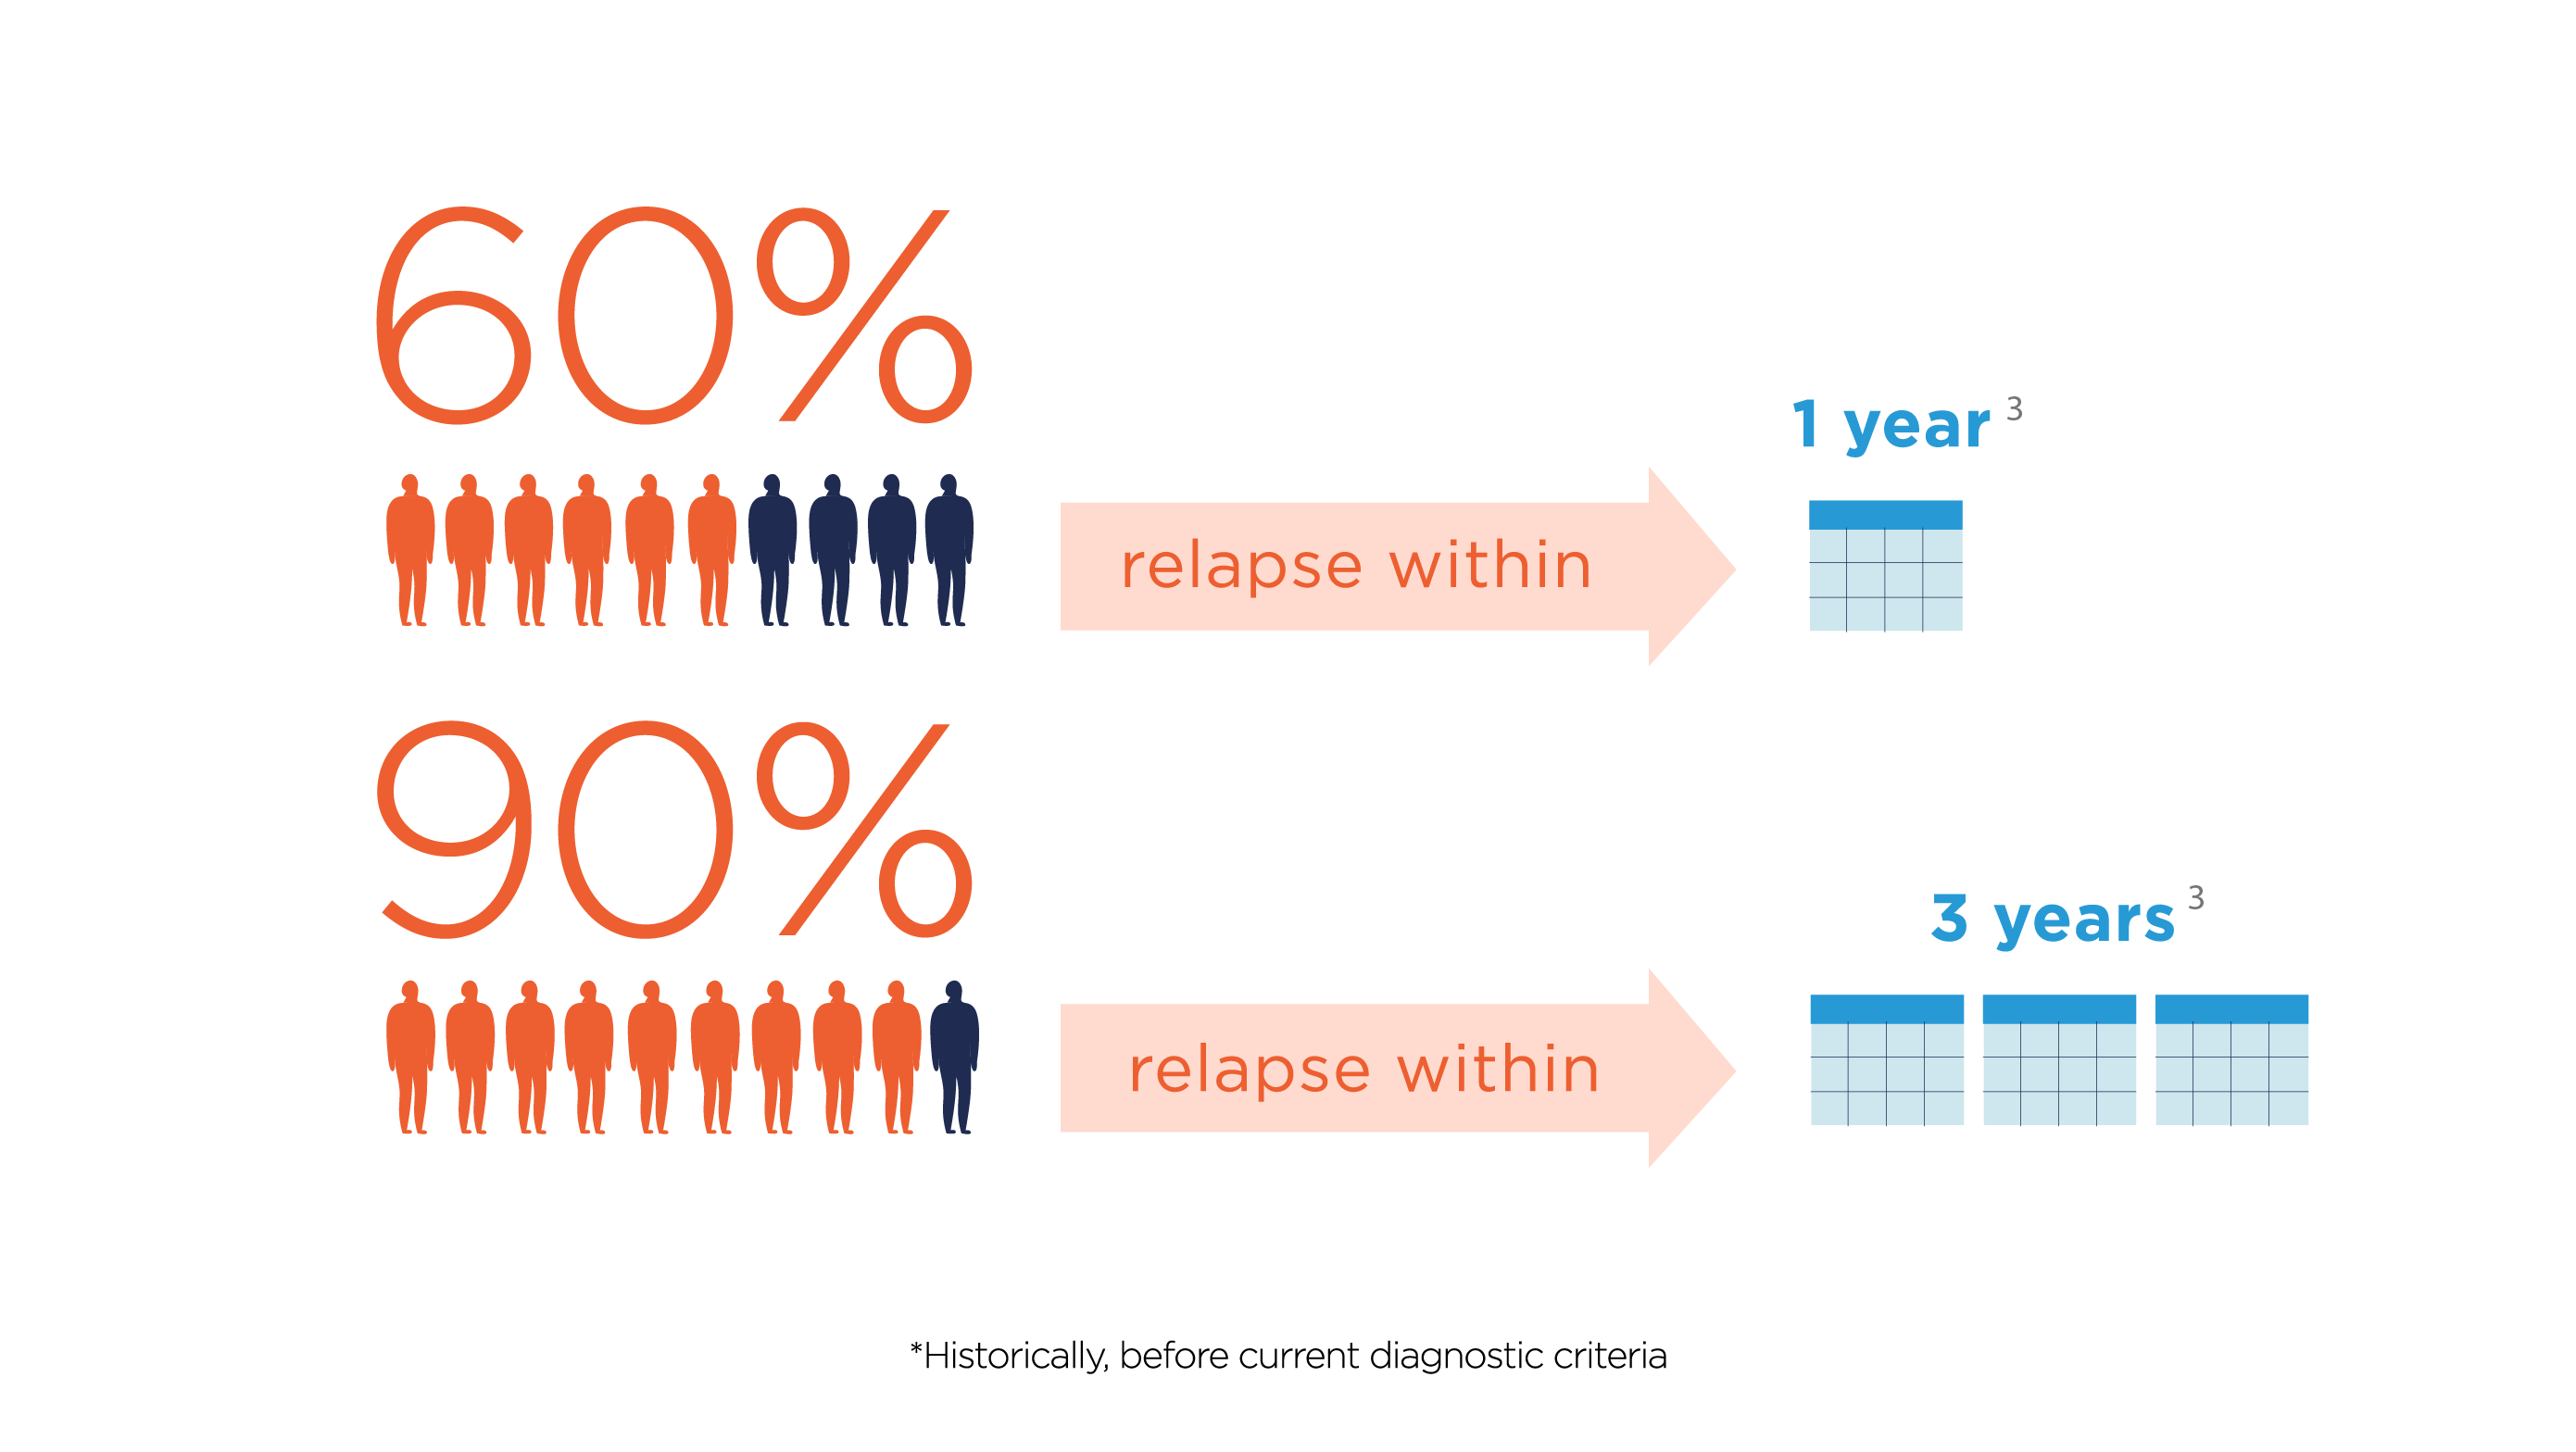 Most people with NMOSD experience sporadic, recurring relapses.<sup>2</sup> Unlike with some other autoimmune diseases, these relapses often cause symptoms to permanently worsen, thereby increasing disability.<sup>3</sup>